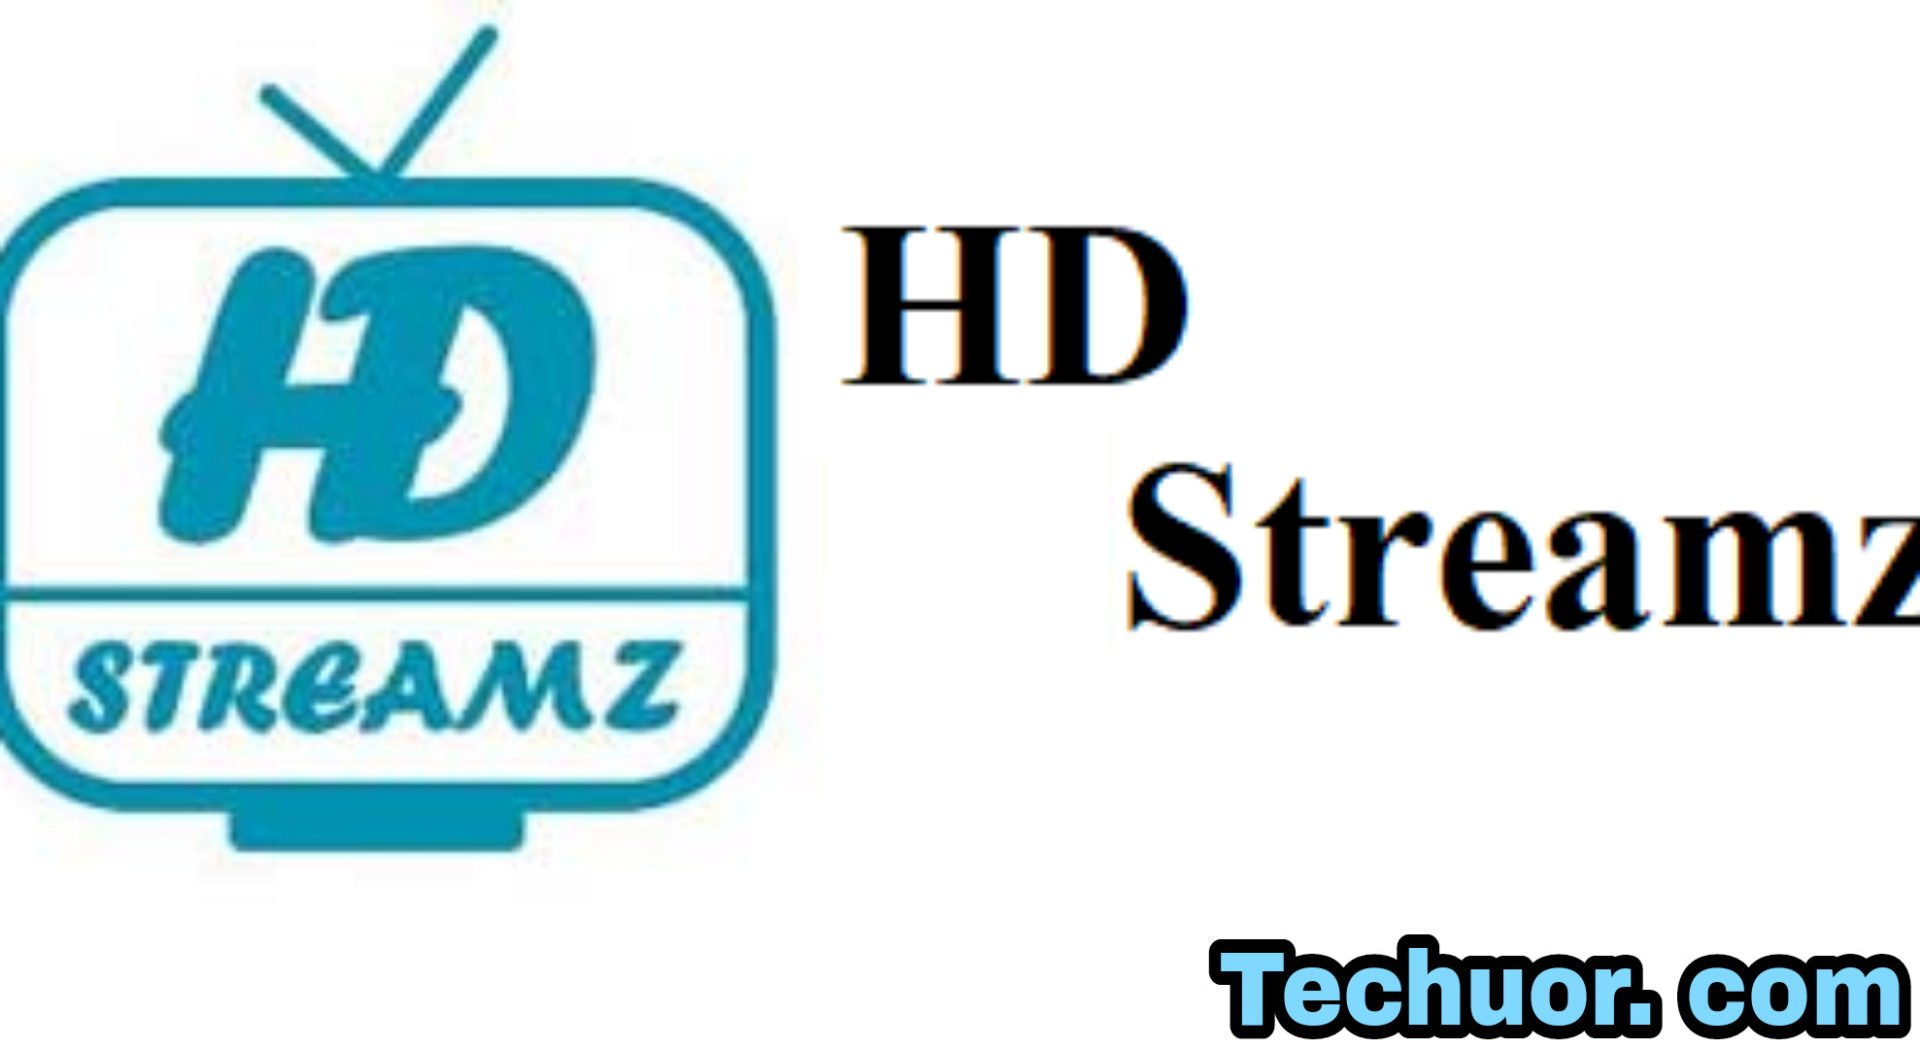 HD Streamz for PC Download (Windows 10/8/7 and Mac)